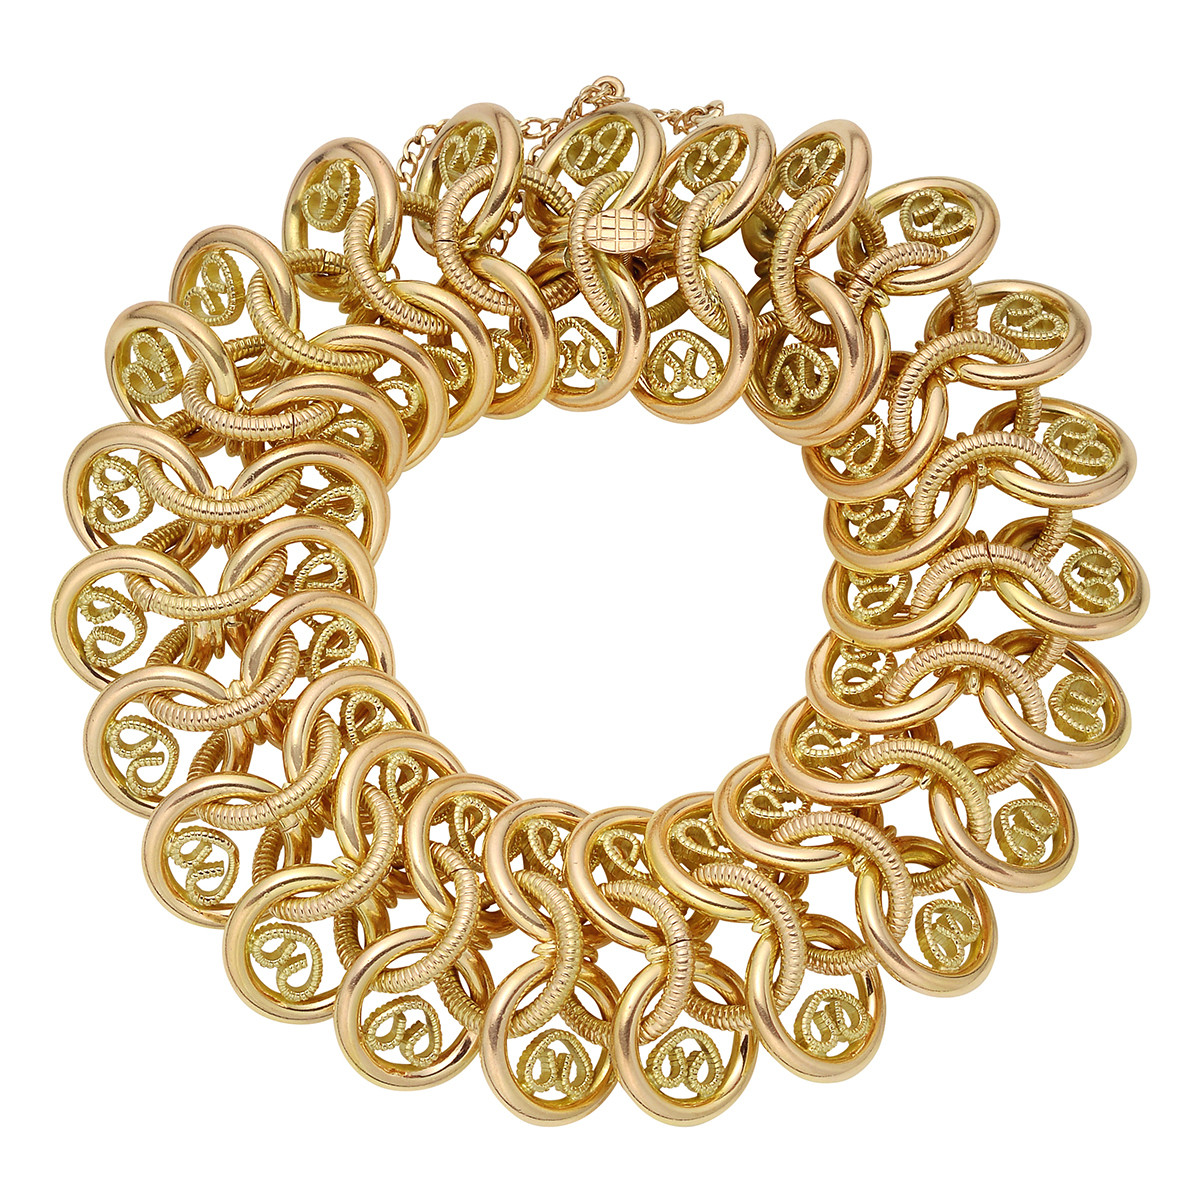 18k Yellow Gold Wide Circle Link Bracelet